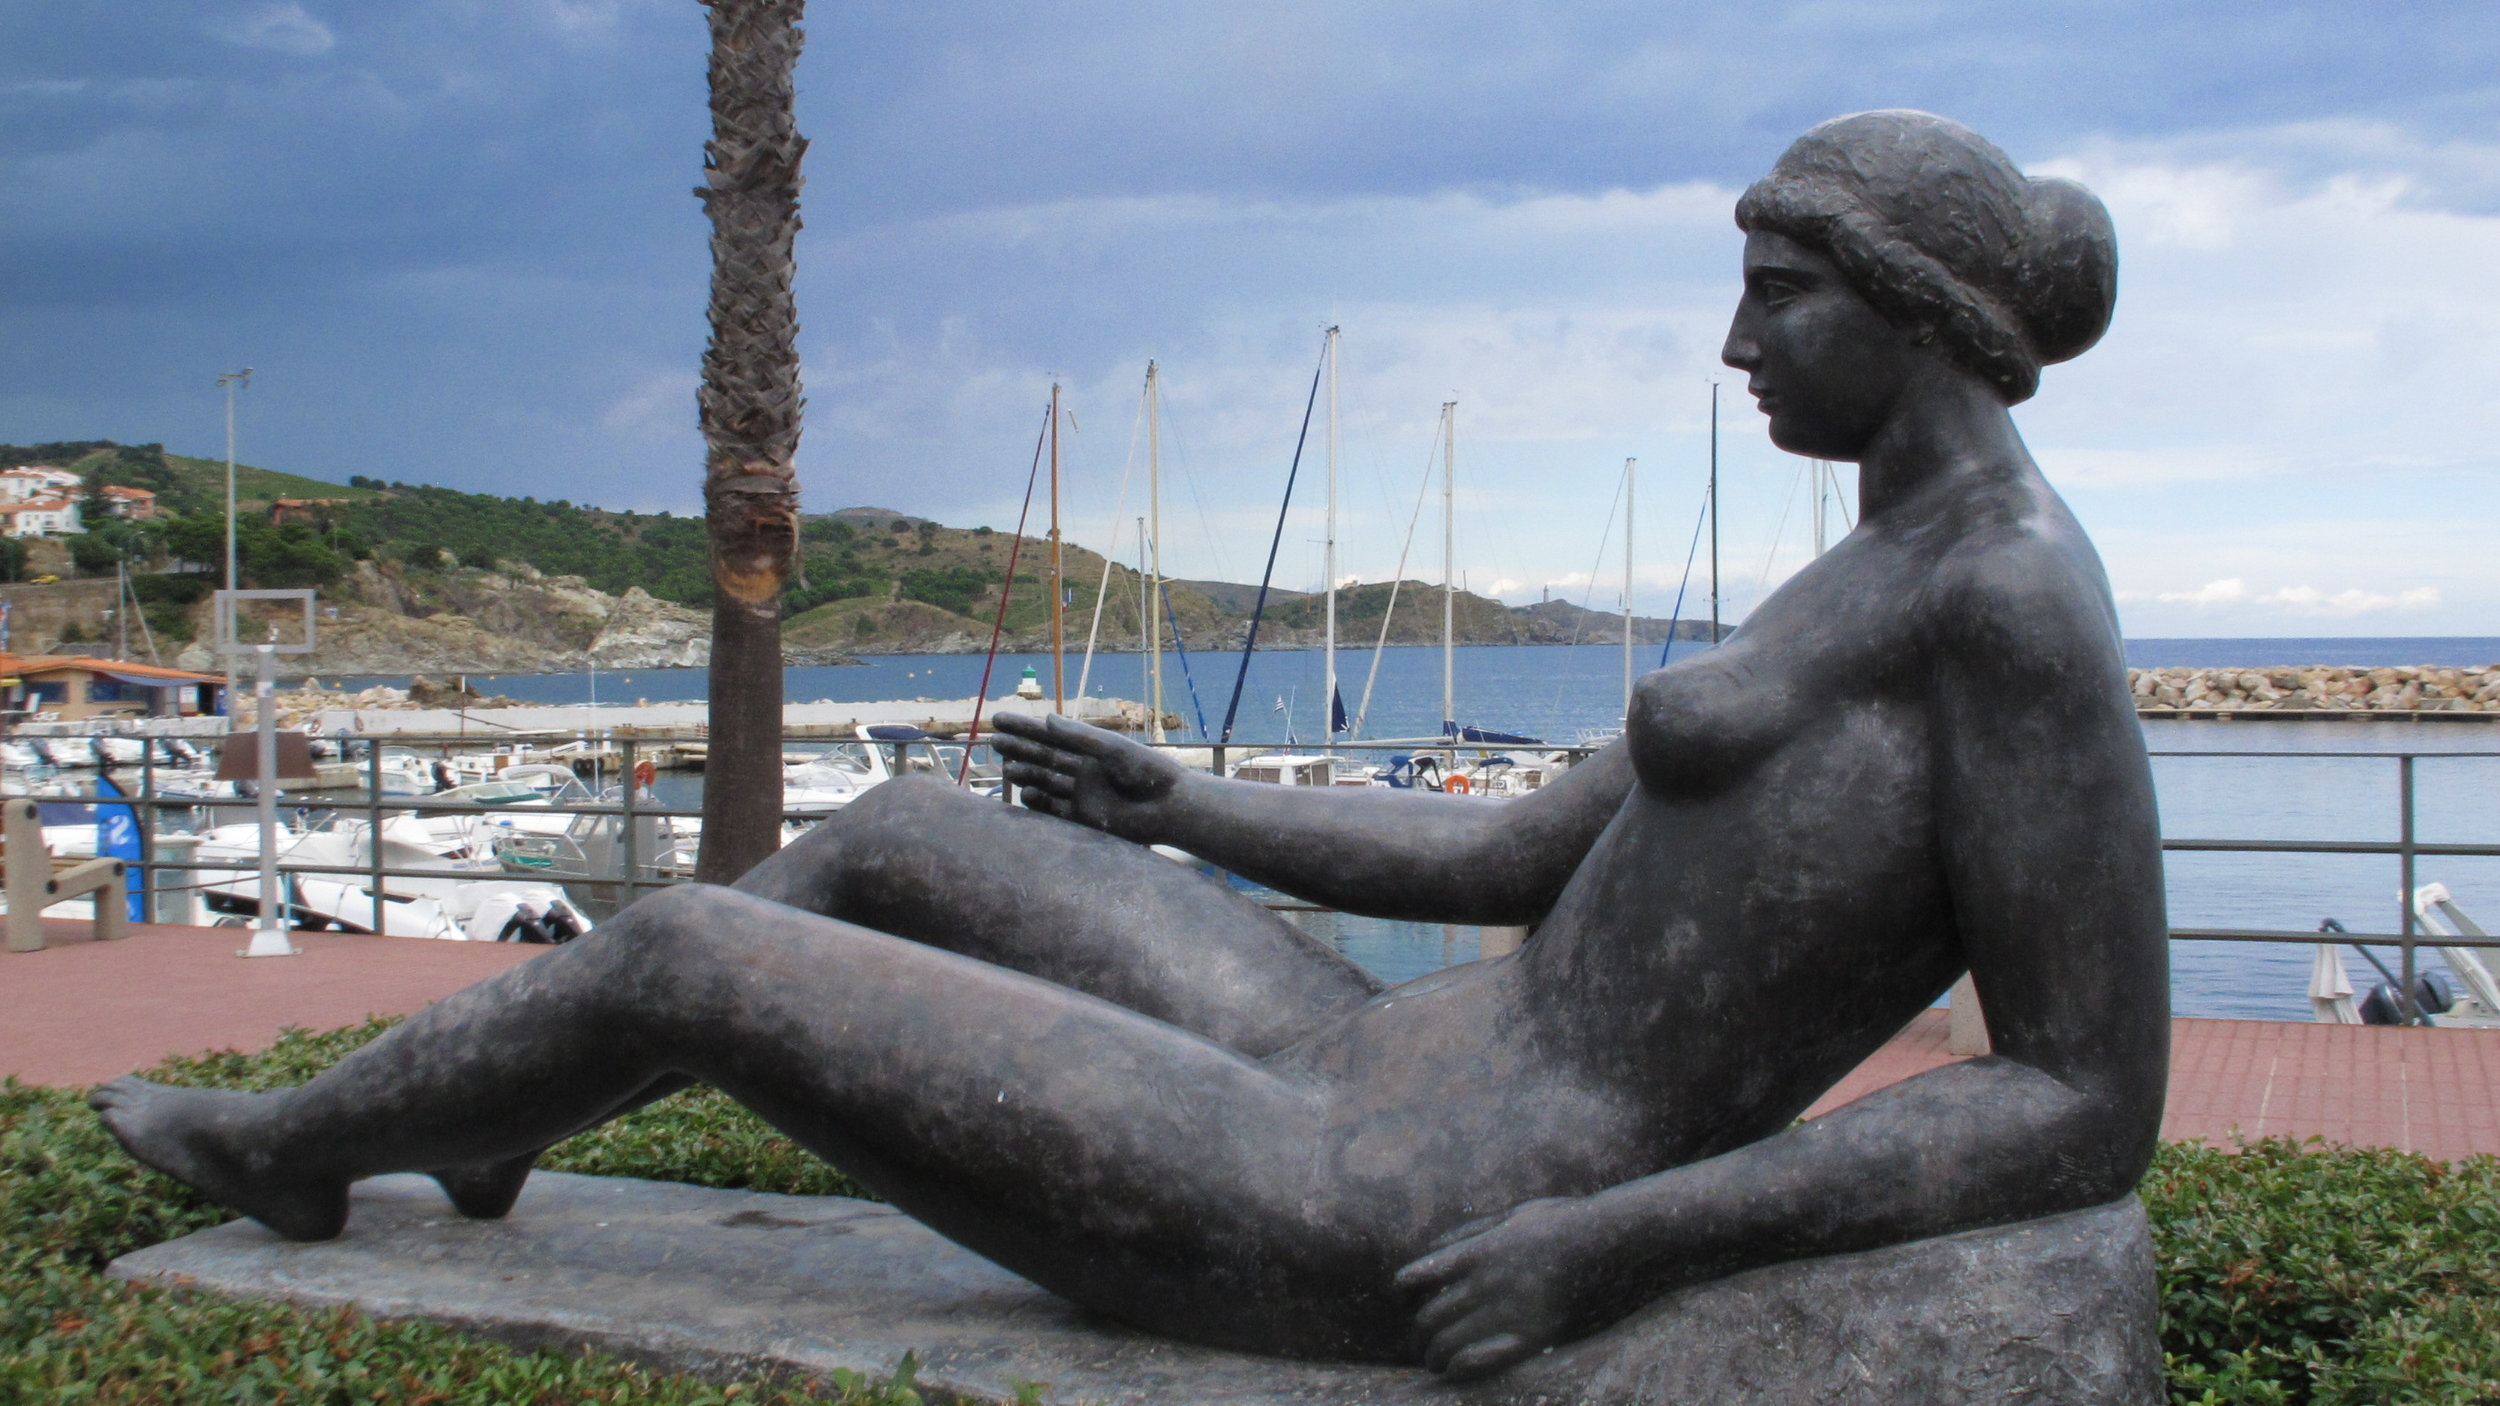 One of the many sculptures by Aristide Maillol in his hometown of Banyuls, where the Pyrenees Mountains tumble into the Mediterranean.Photo Travellati Tours.